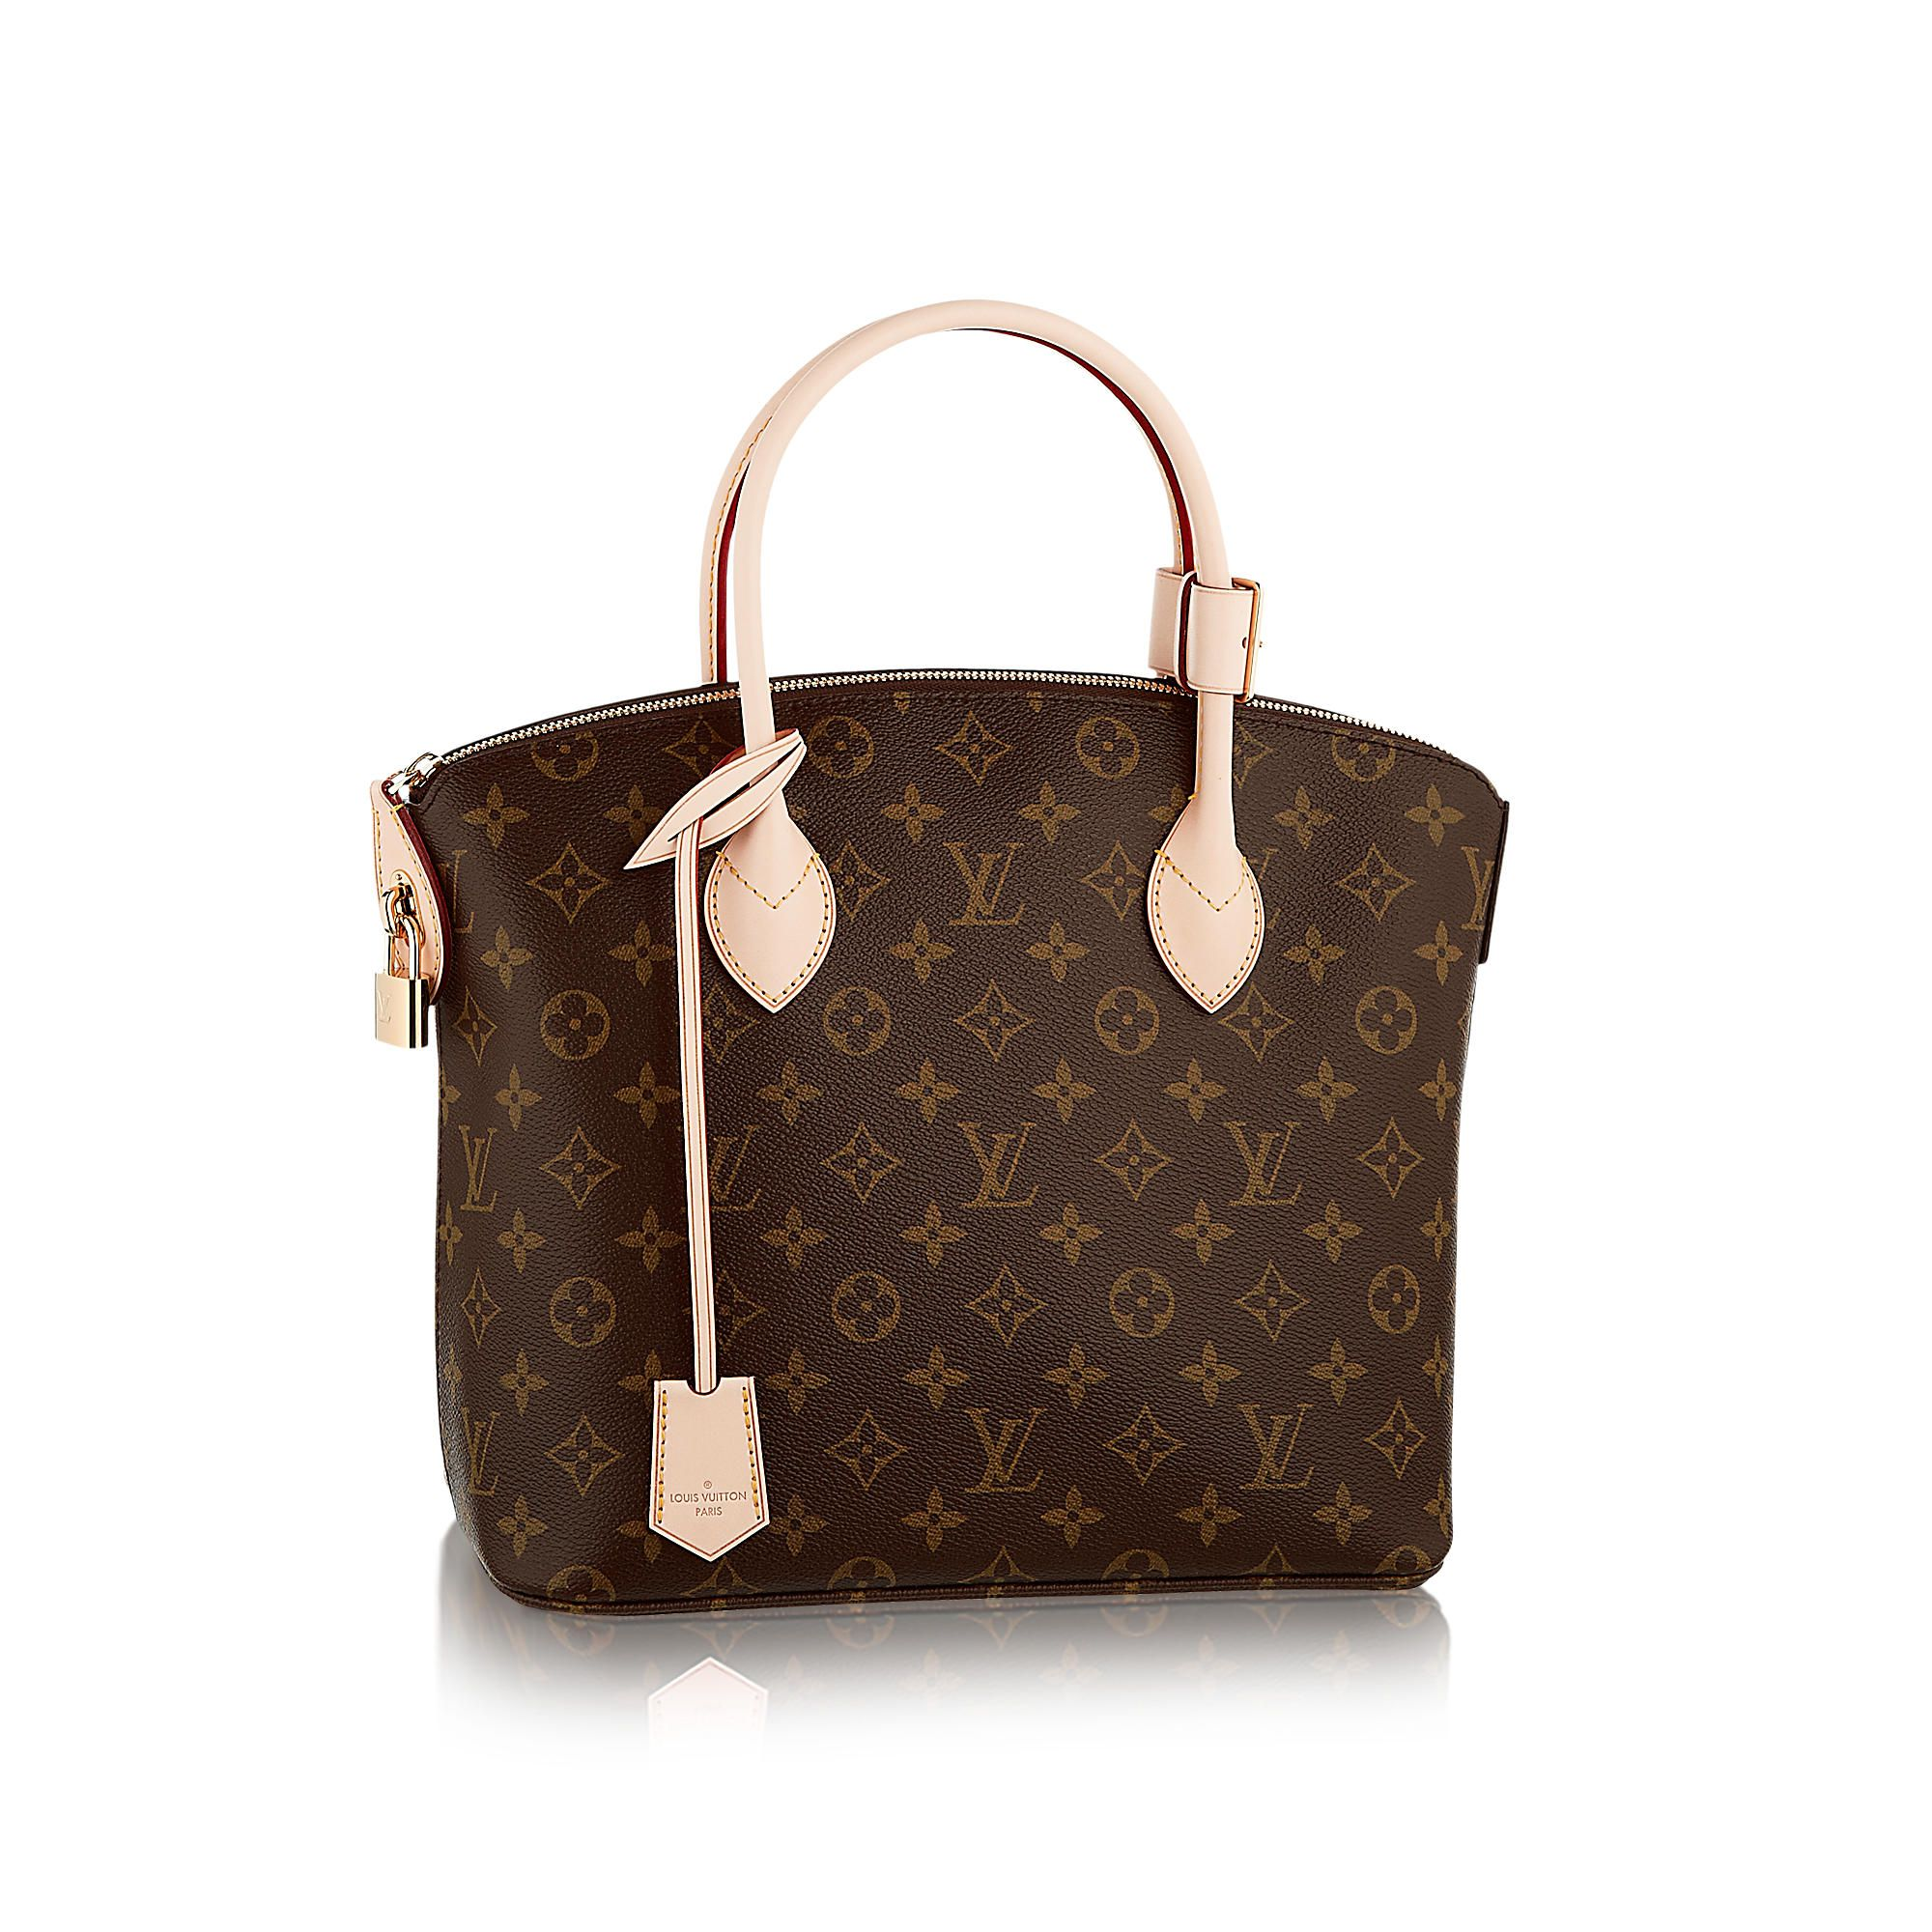 louis vuitton bags original website